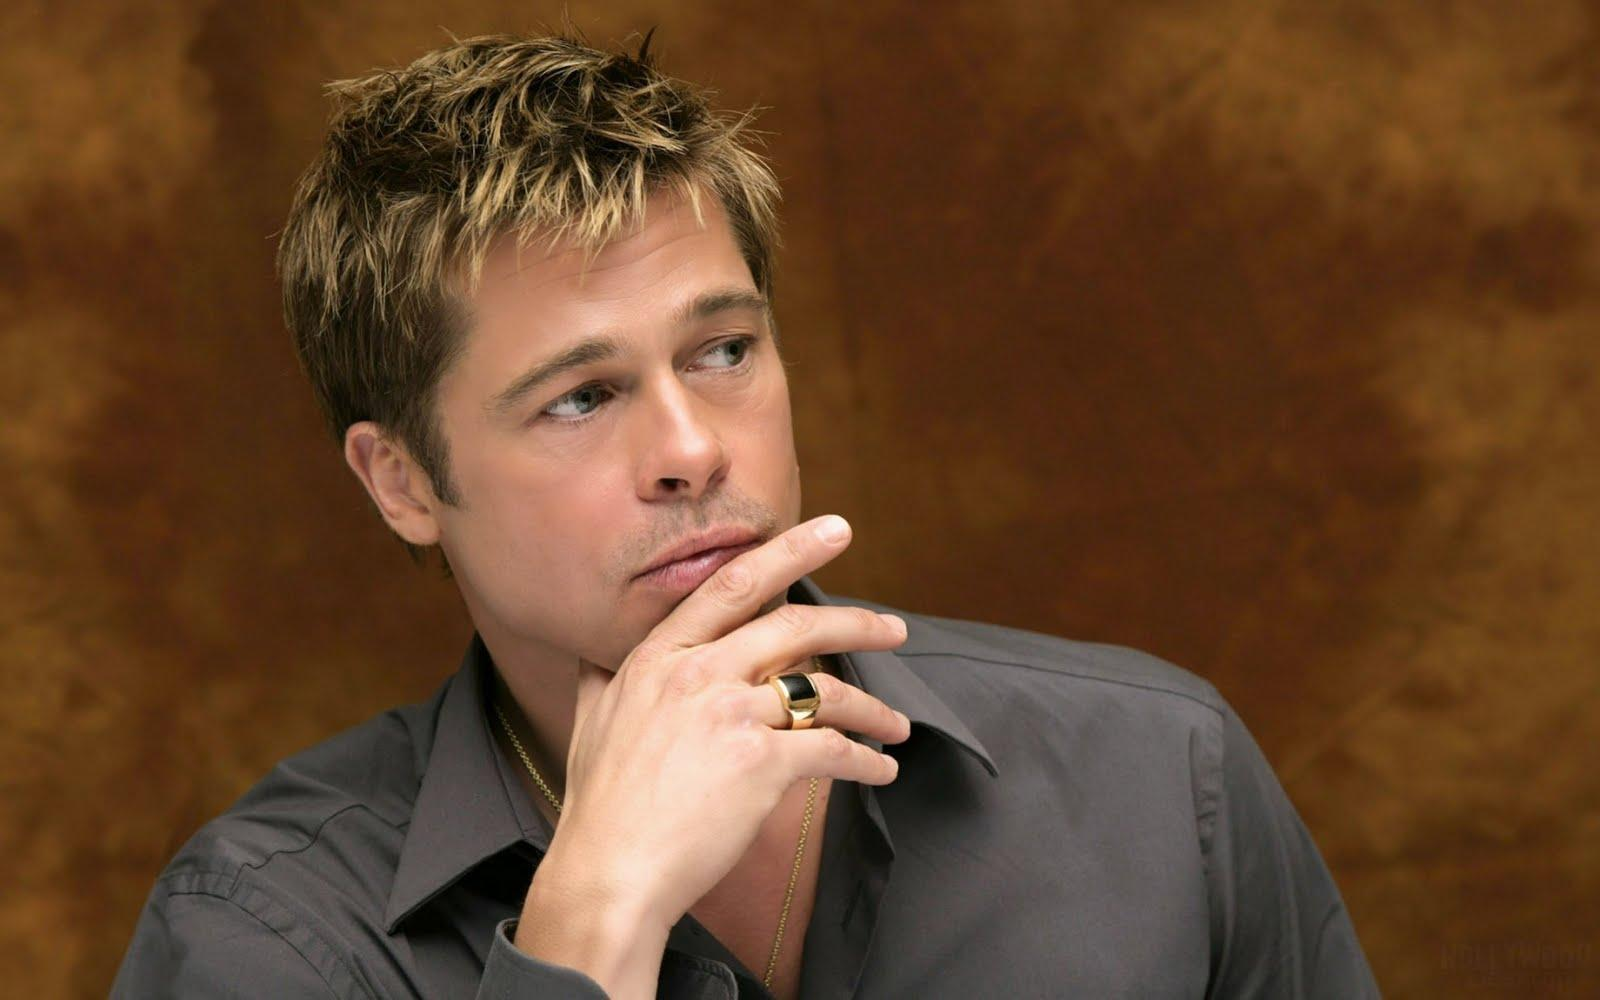 Brad Pitt HD Widescreen Wallpaper - Celebrities Powericare.com